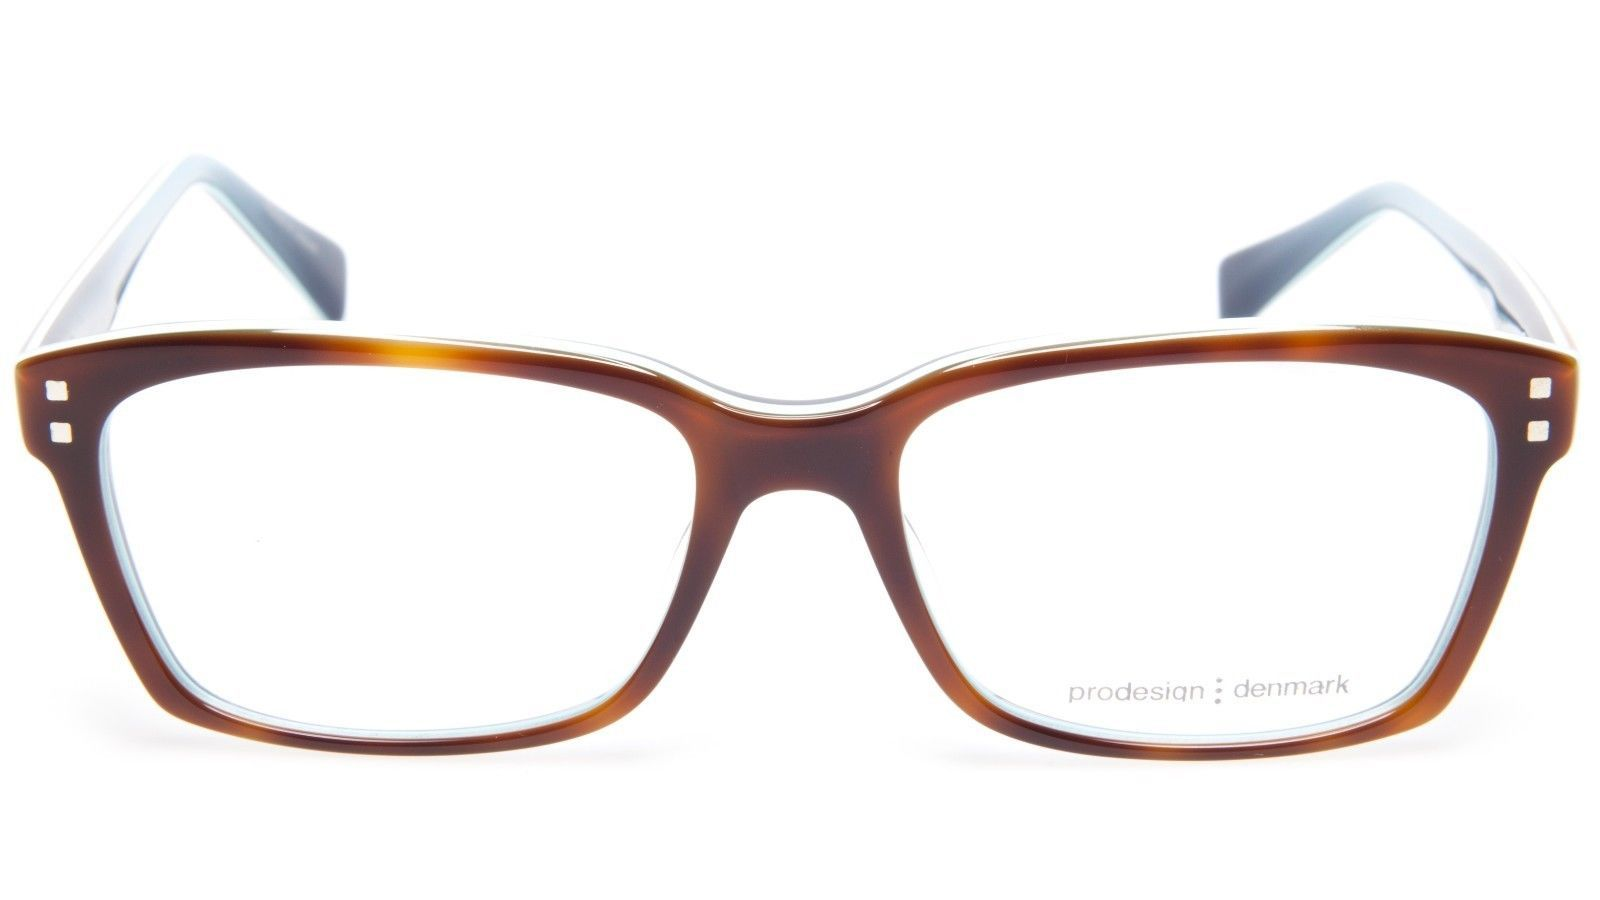 78c1a498a2 NEW PRODESIGN DENMARK 1710 c.5014 BROWN DEMI EYEGLASSES 54-17-140 B36mm